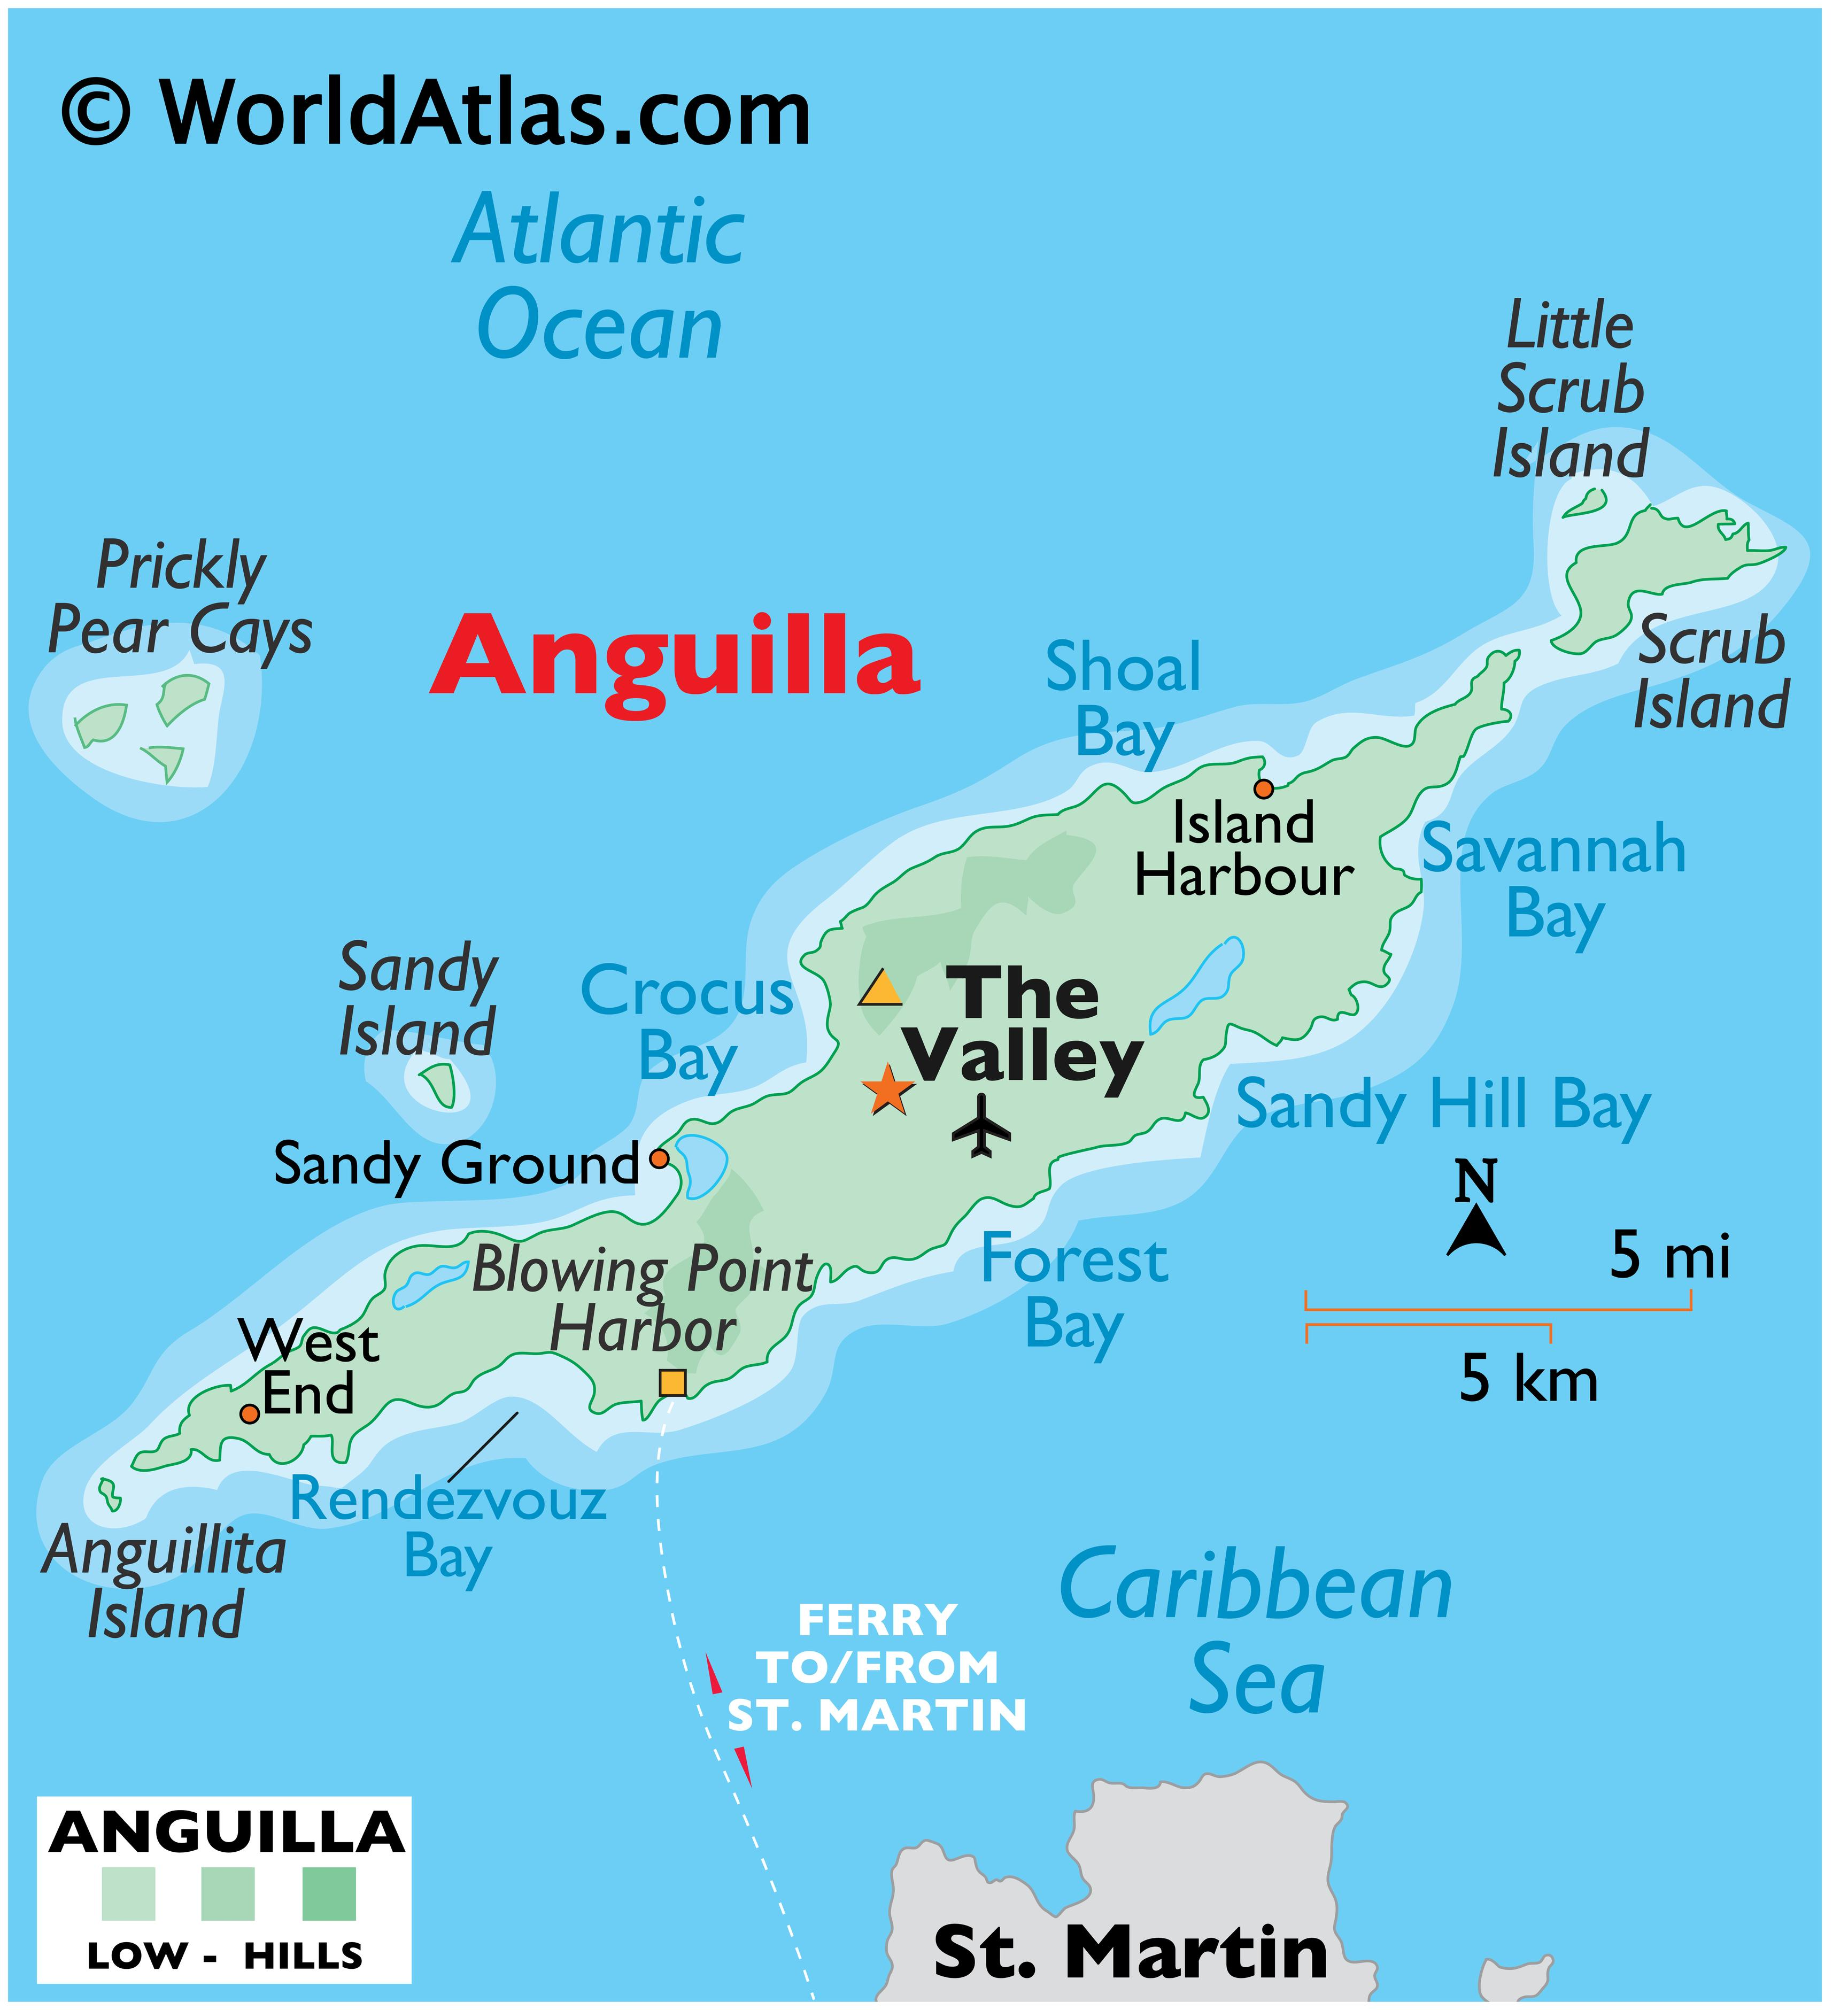 Physical Map of Anguilla showing islands, relief, important harbours, the capital, surrounding water features, and more.